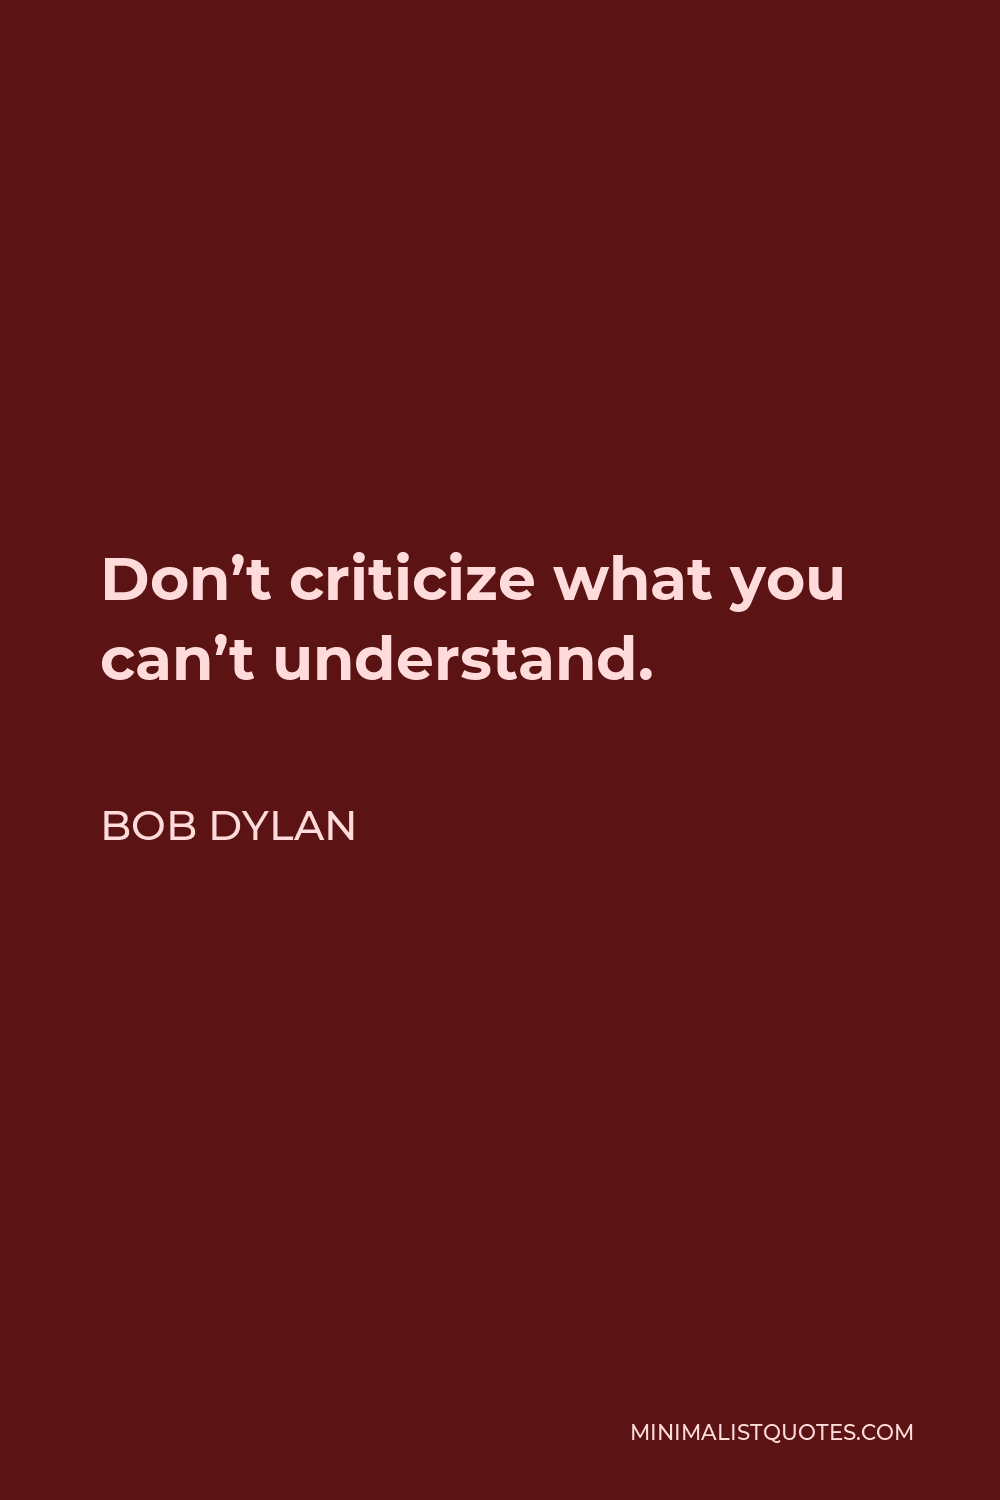 Bob Dylan Quote - Don't criticize what you can't understand.